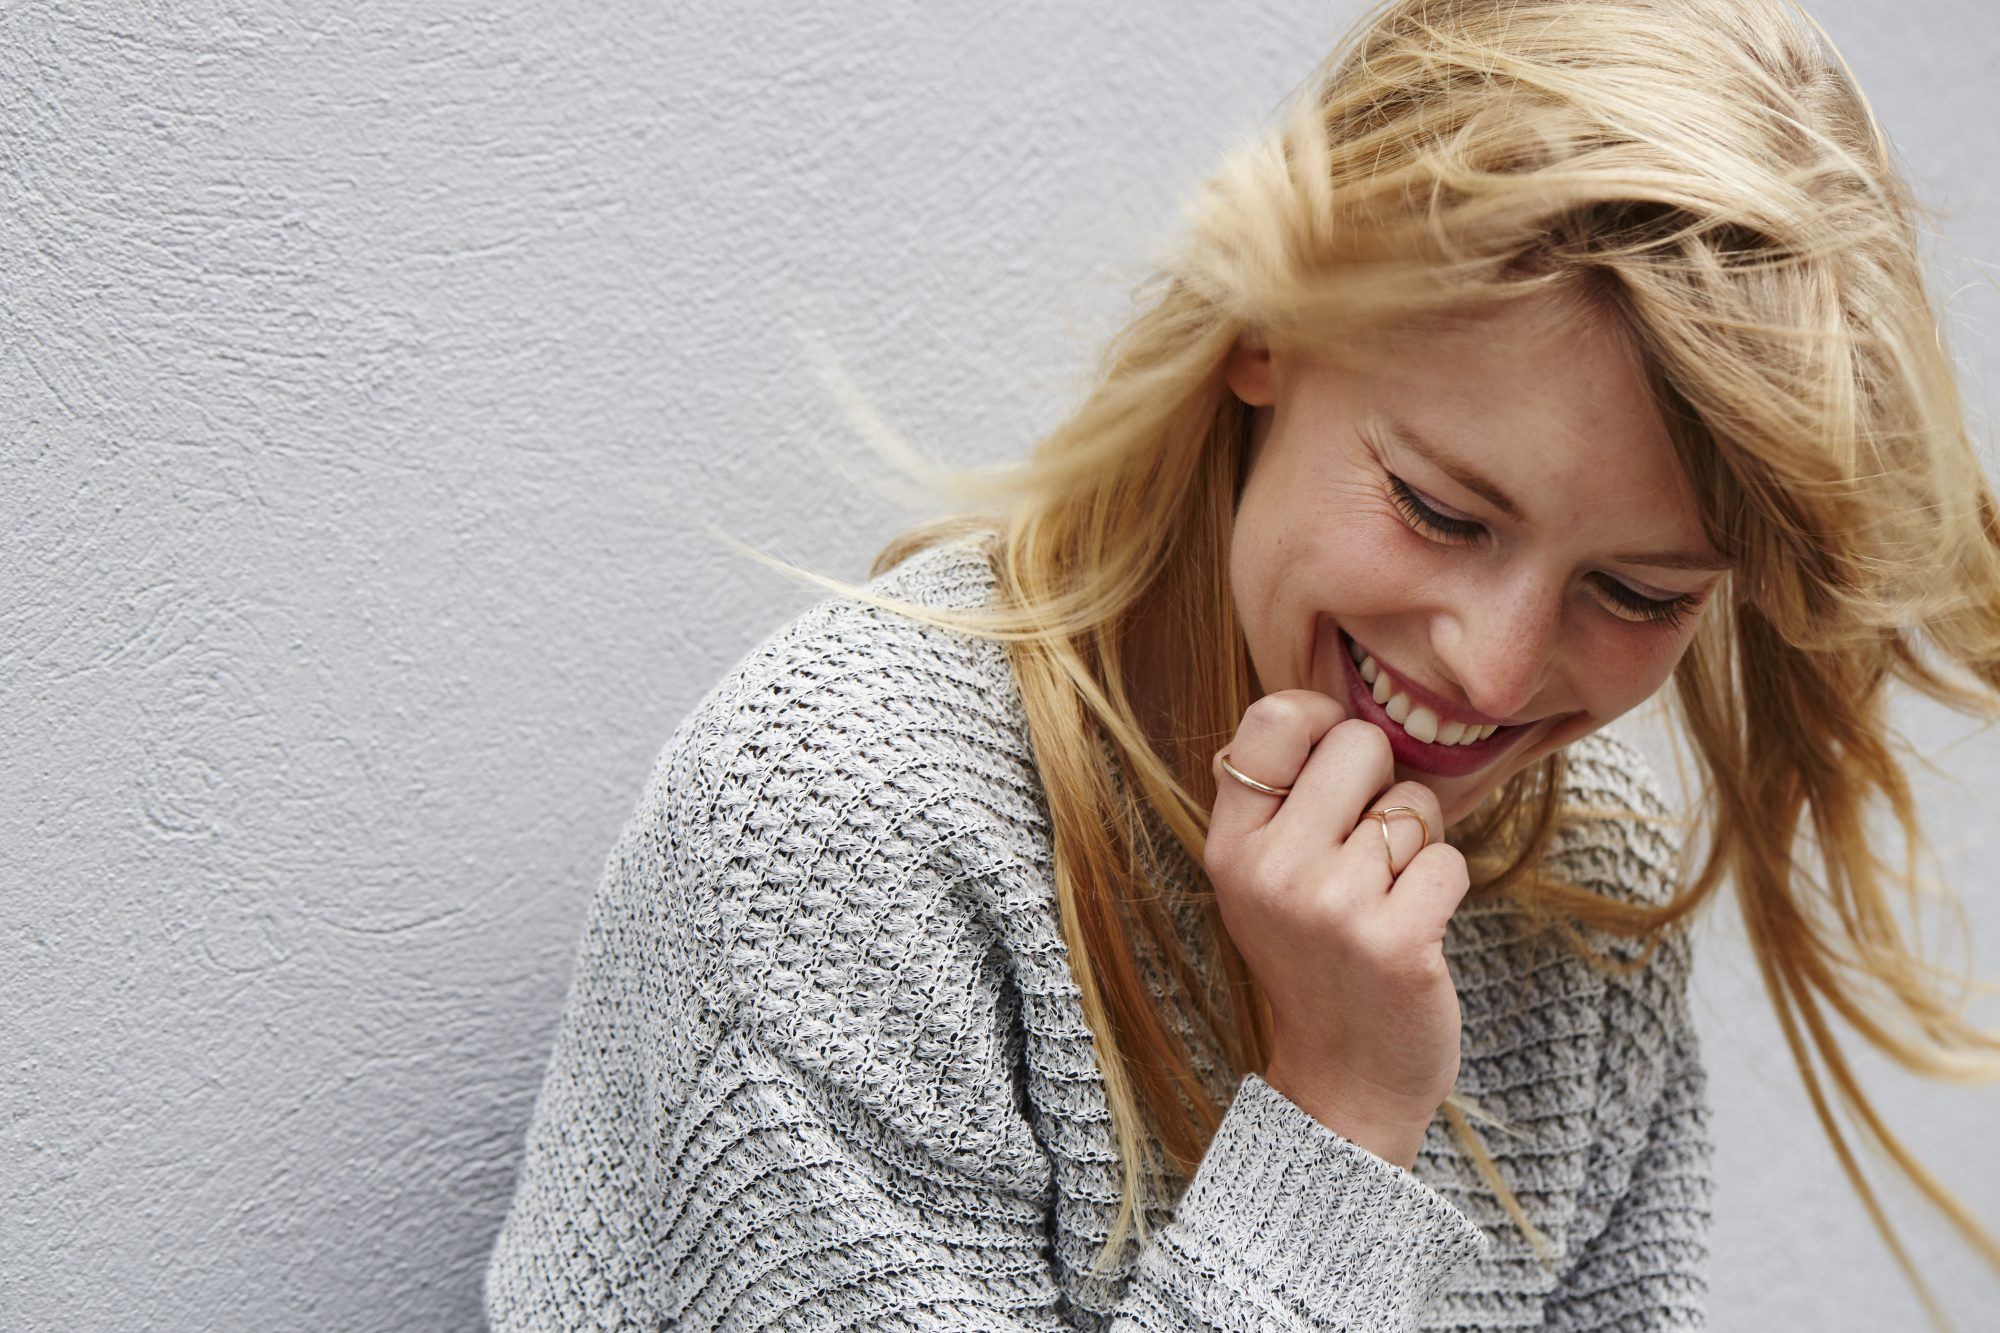 woman laughing hair blowing in wind